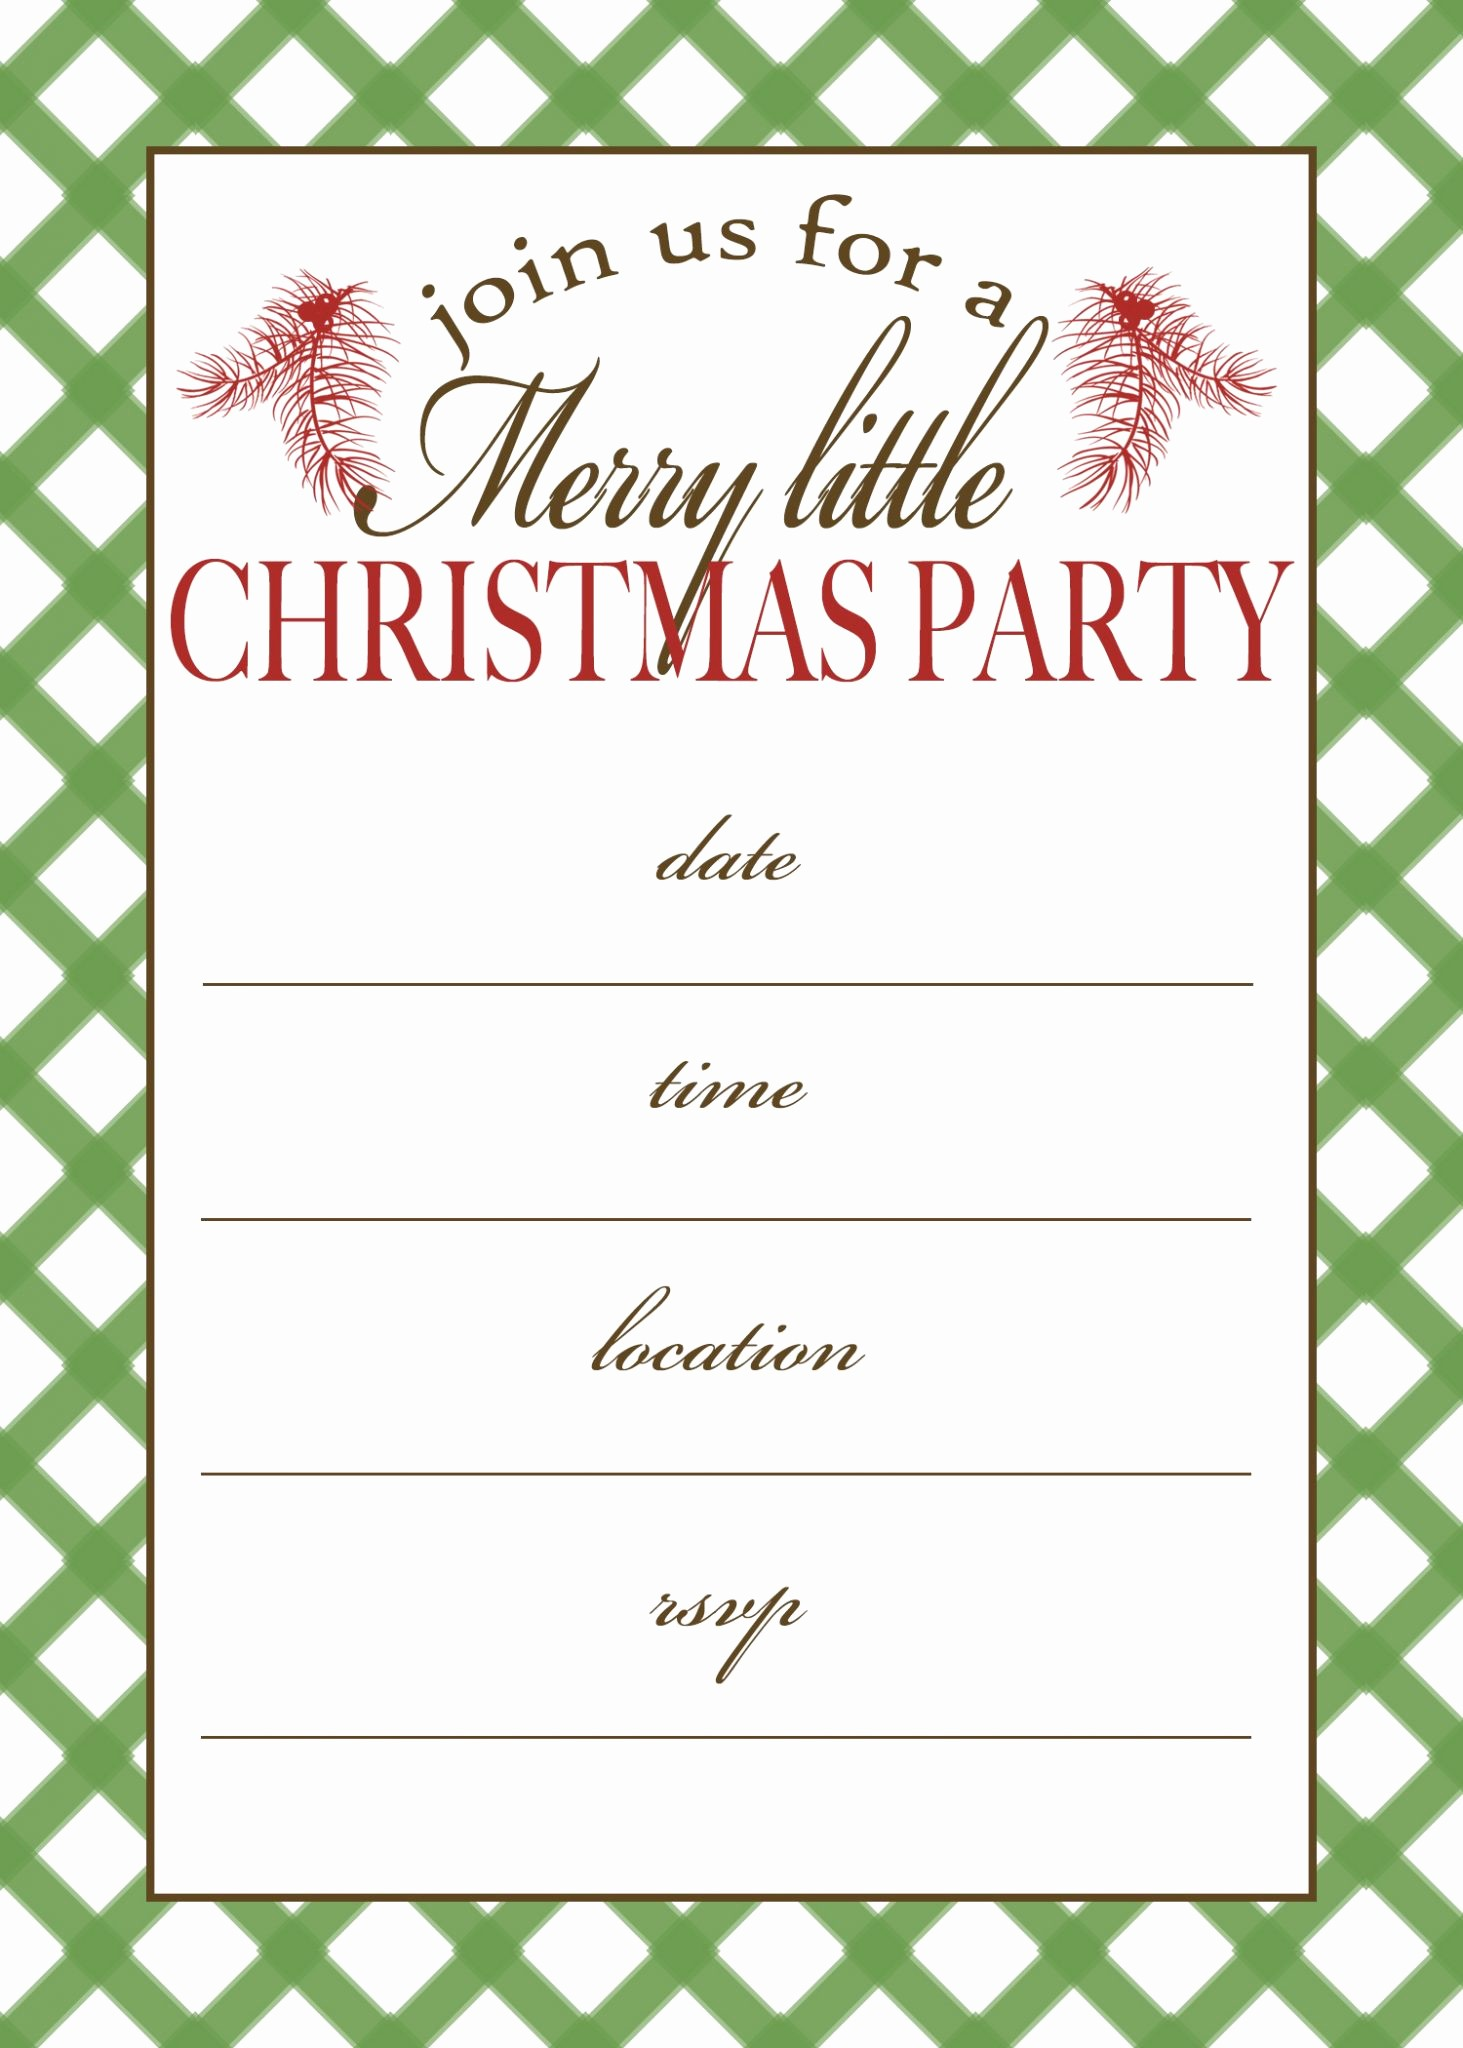 Free Online Christmas Party Invitations Beautiful Free Printable Christmas Party Invitation